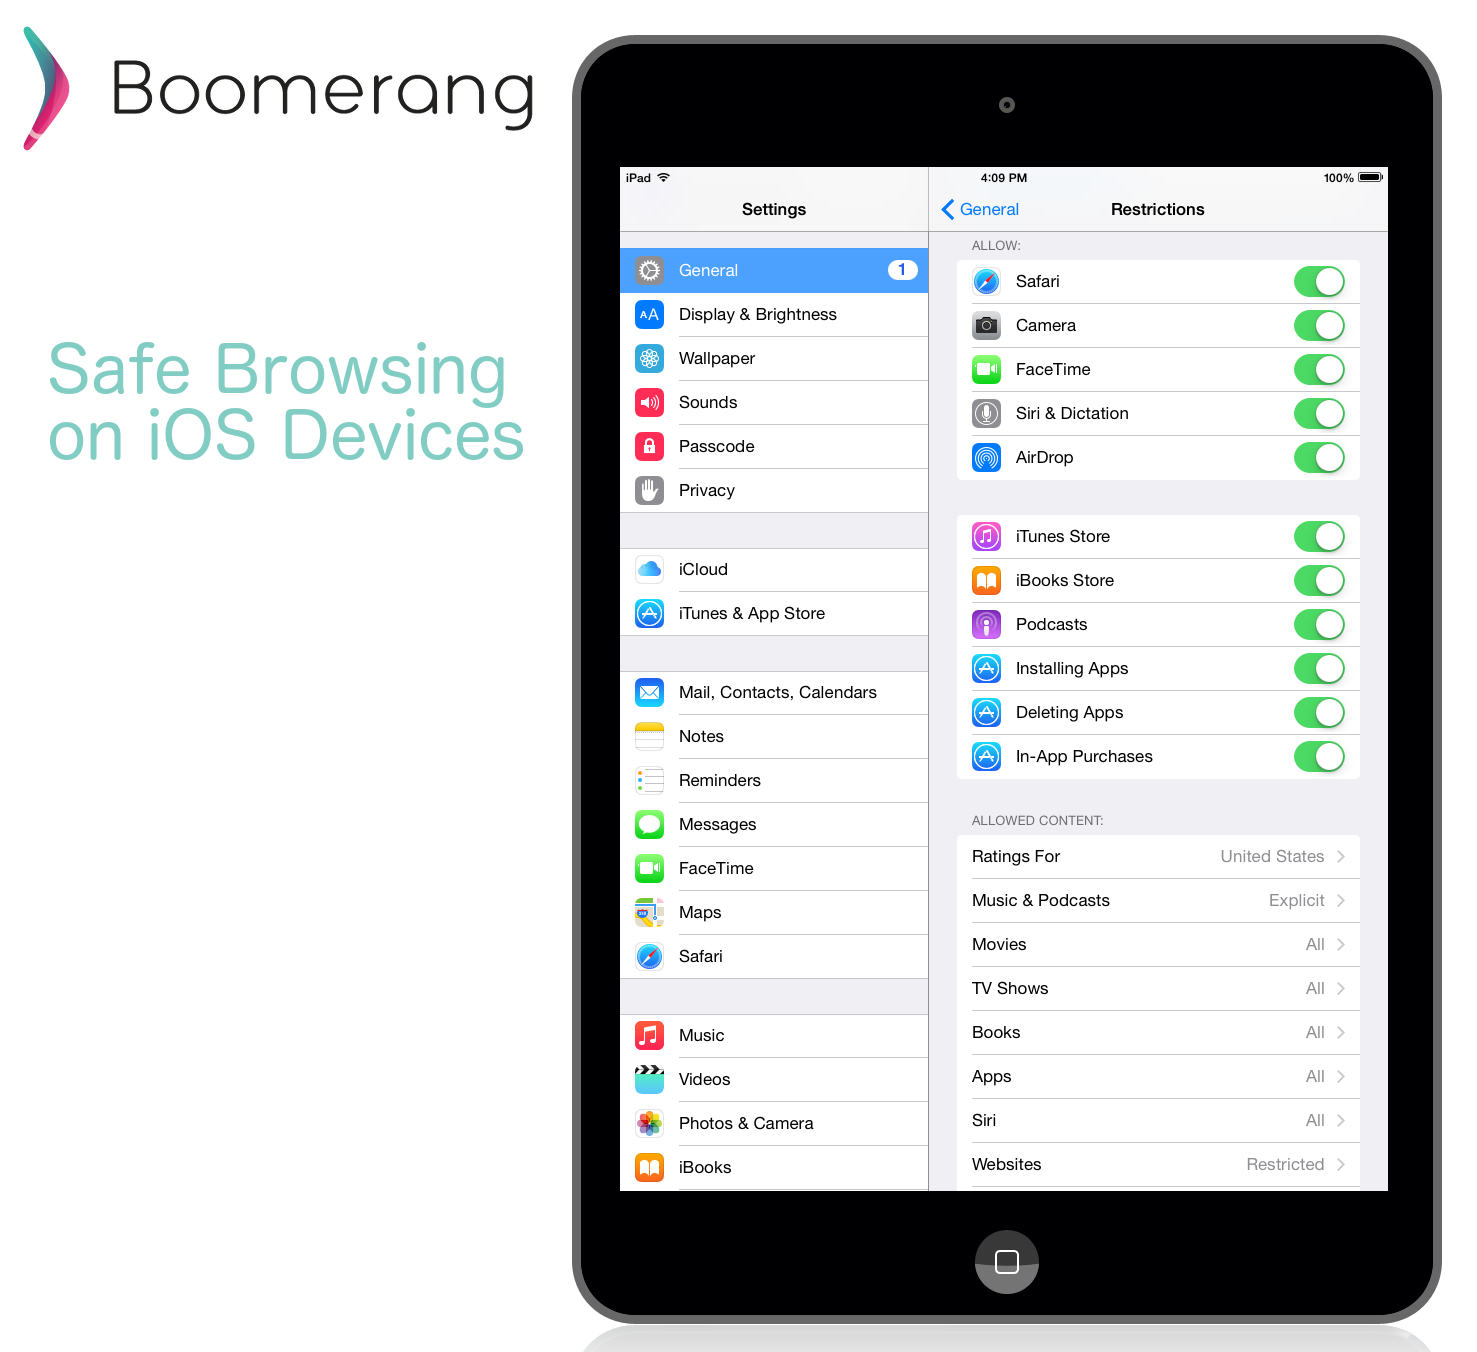 Web filtering in iOS